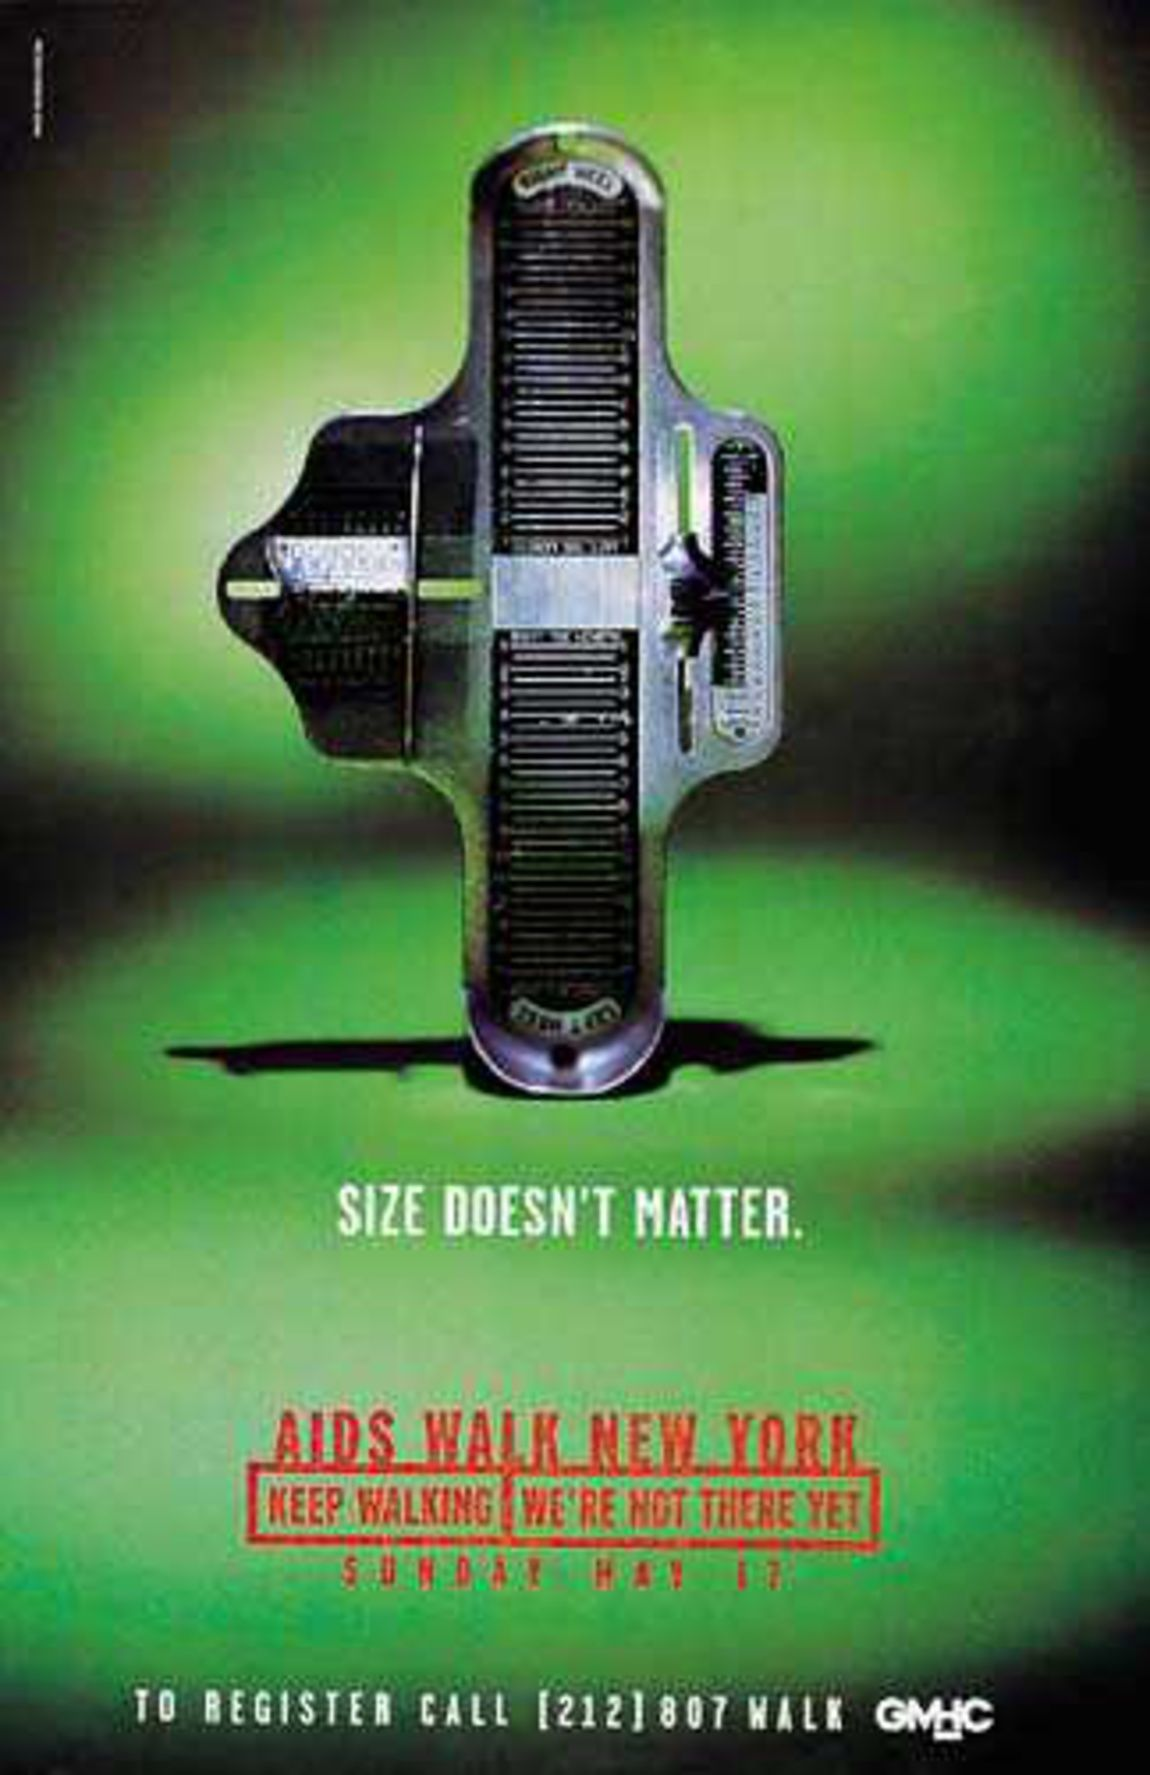 Read more: https://www.luerzersarchive.com/en/magazine/print-detail/2370.html Size doesn´t matter. Pay-off: Aids walk New York. Keep walking. We´re not there yet. Tags: Young & Rubicam (Y&R), New York,Robert Dufour,Betsy Petropoulos,GMHC,Nicholas Everleigh